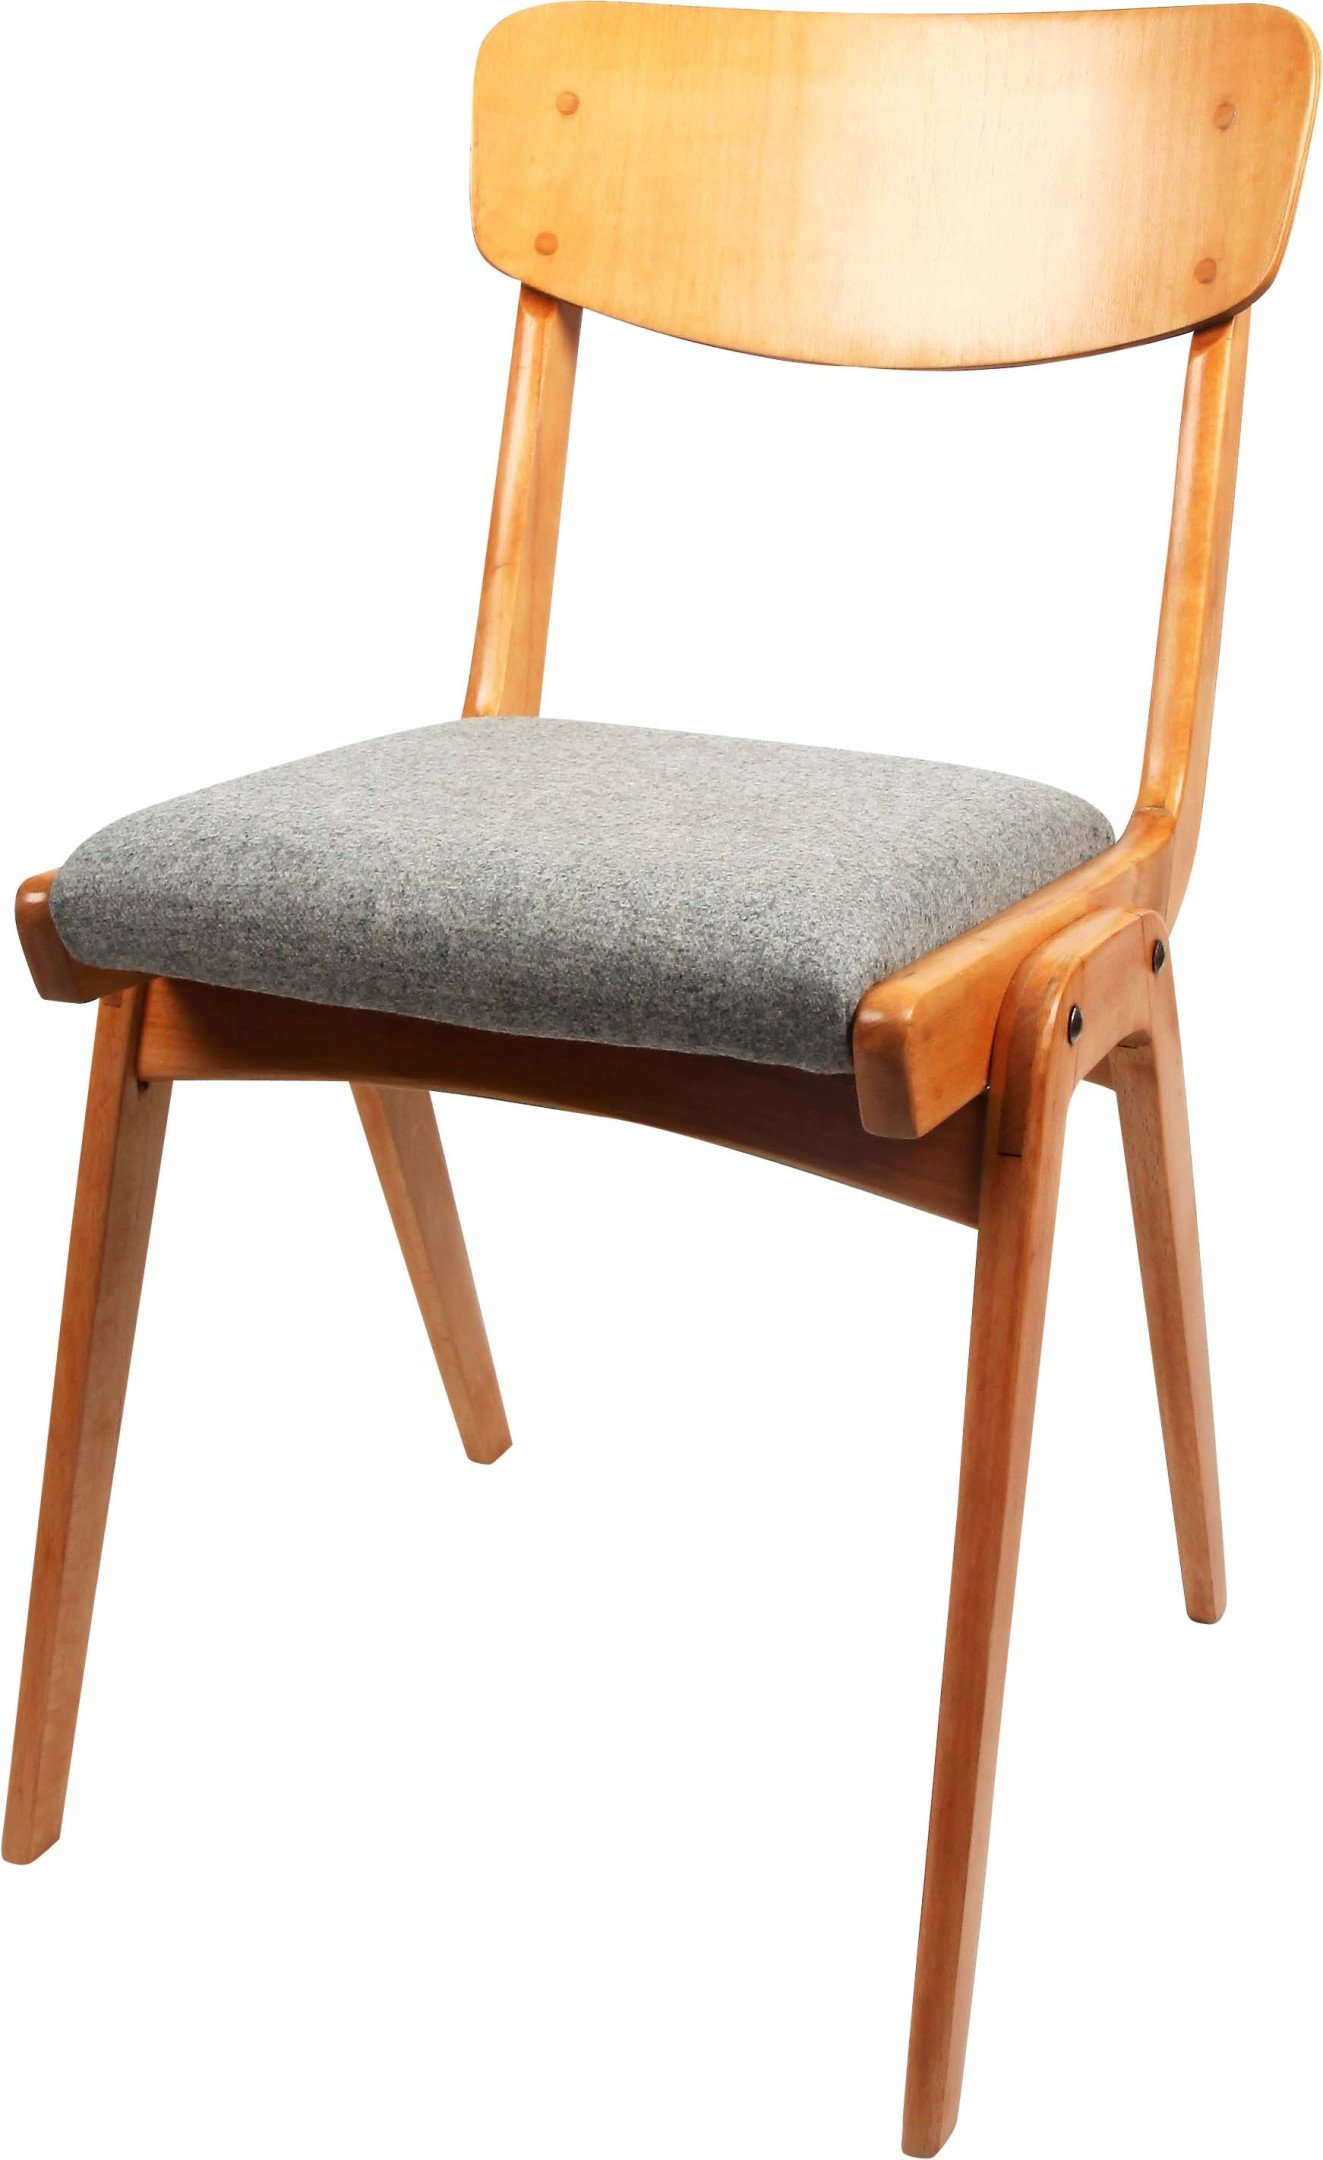 Chair, 1980s